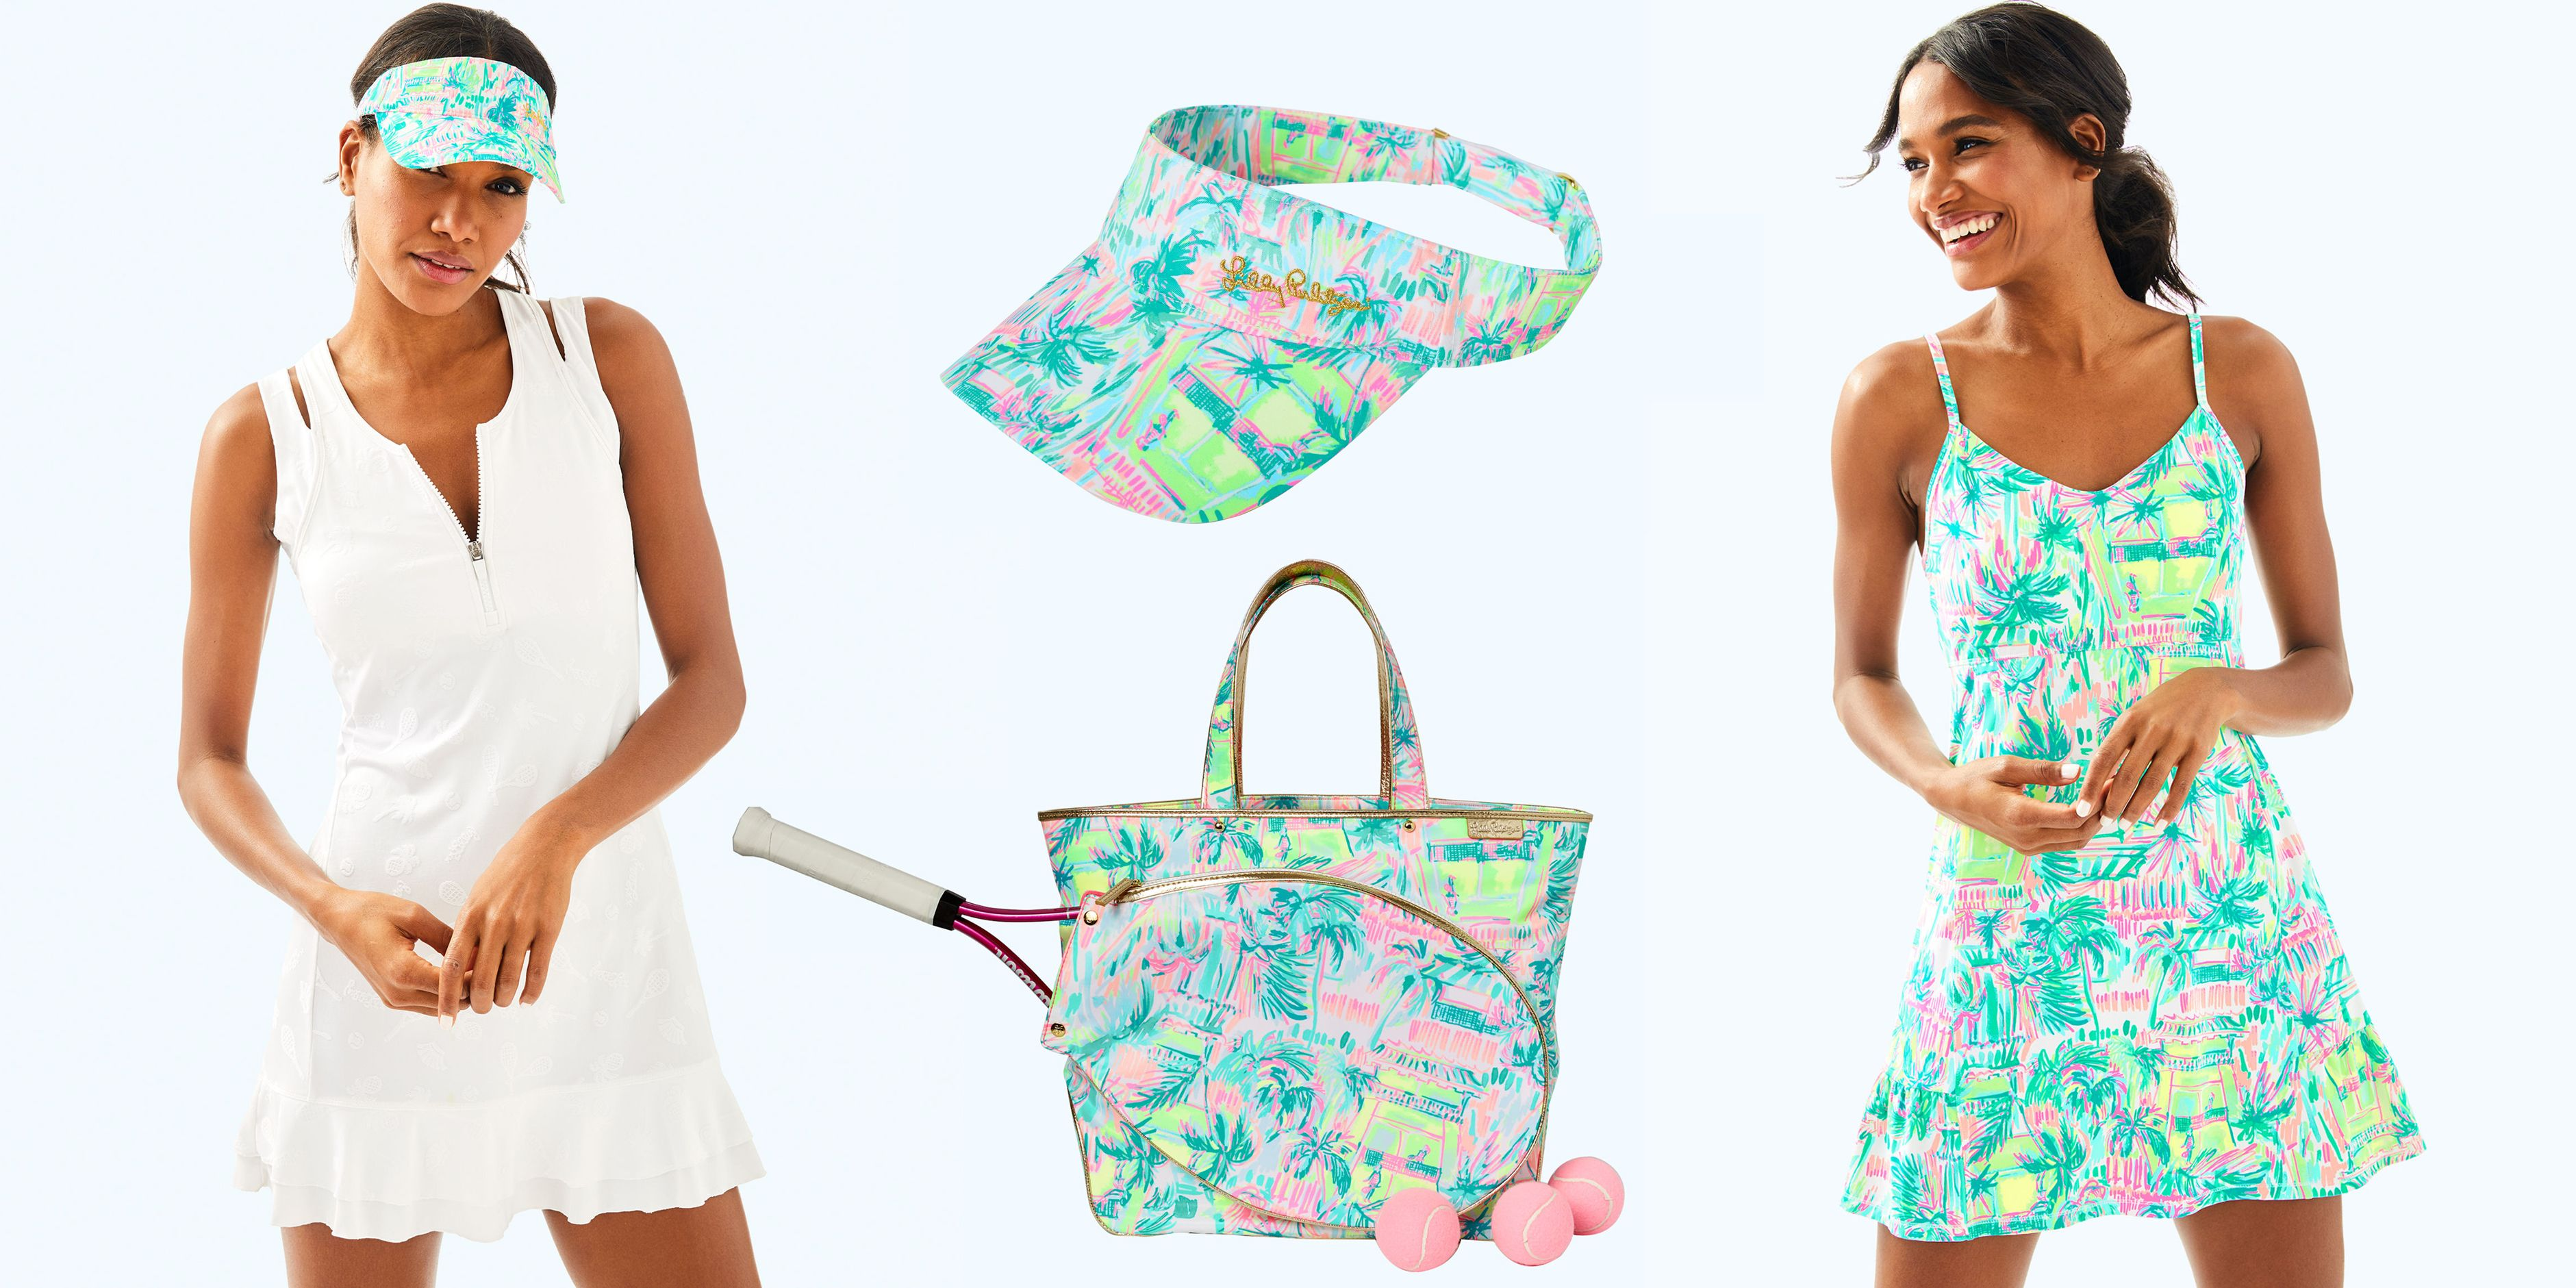 388f956021ff95 Lilly Pulitzer Tennis Collection - What to Shop From New Lilly ...